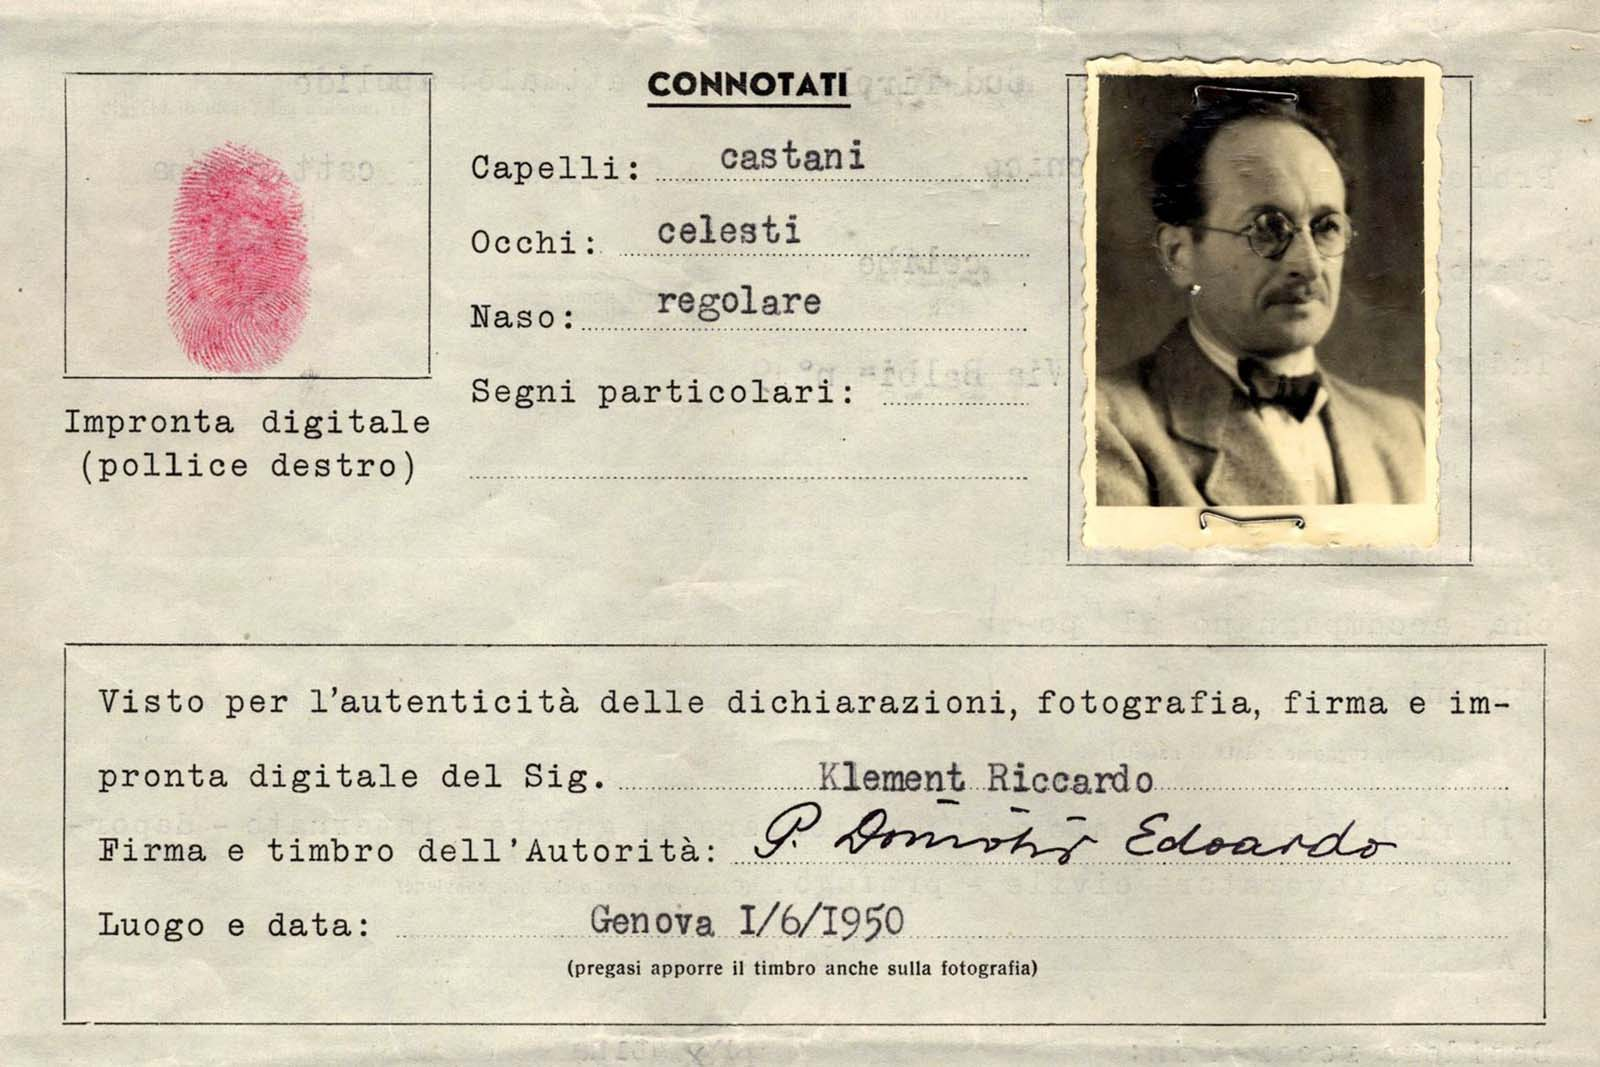 An image of a Red Cross Travel Document created for one Ricardo Klement, an alias of Adolf Eichmann. This document enabled Eichmann to leave Europe via Italy and travel to Argentina.